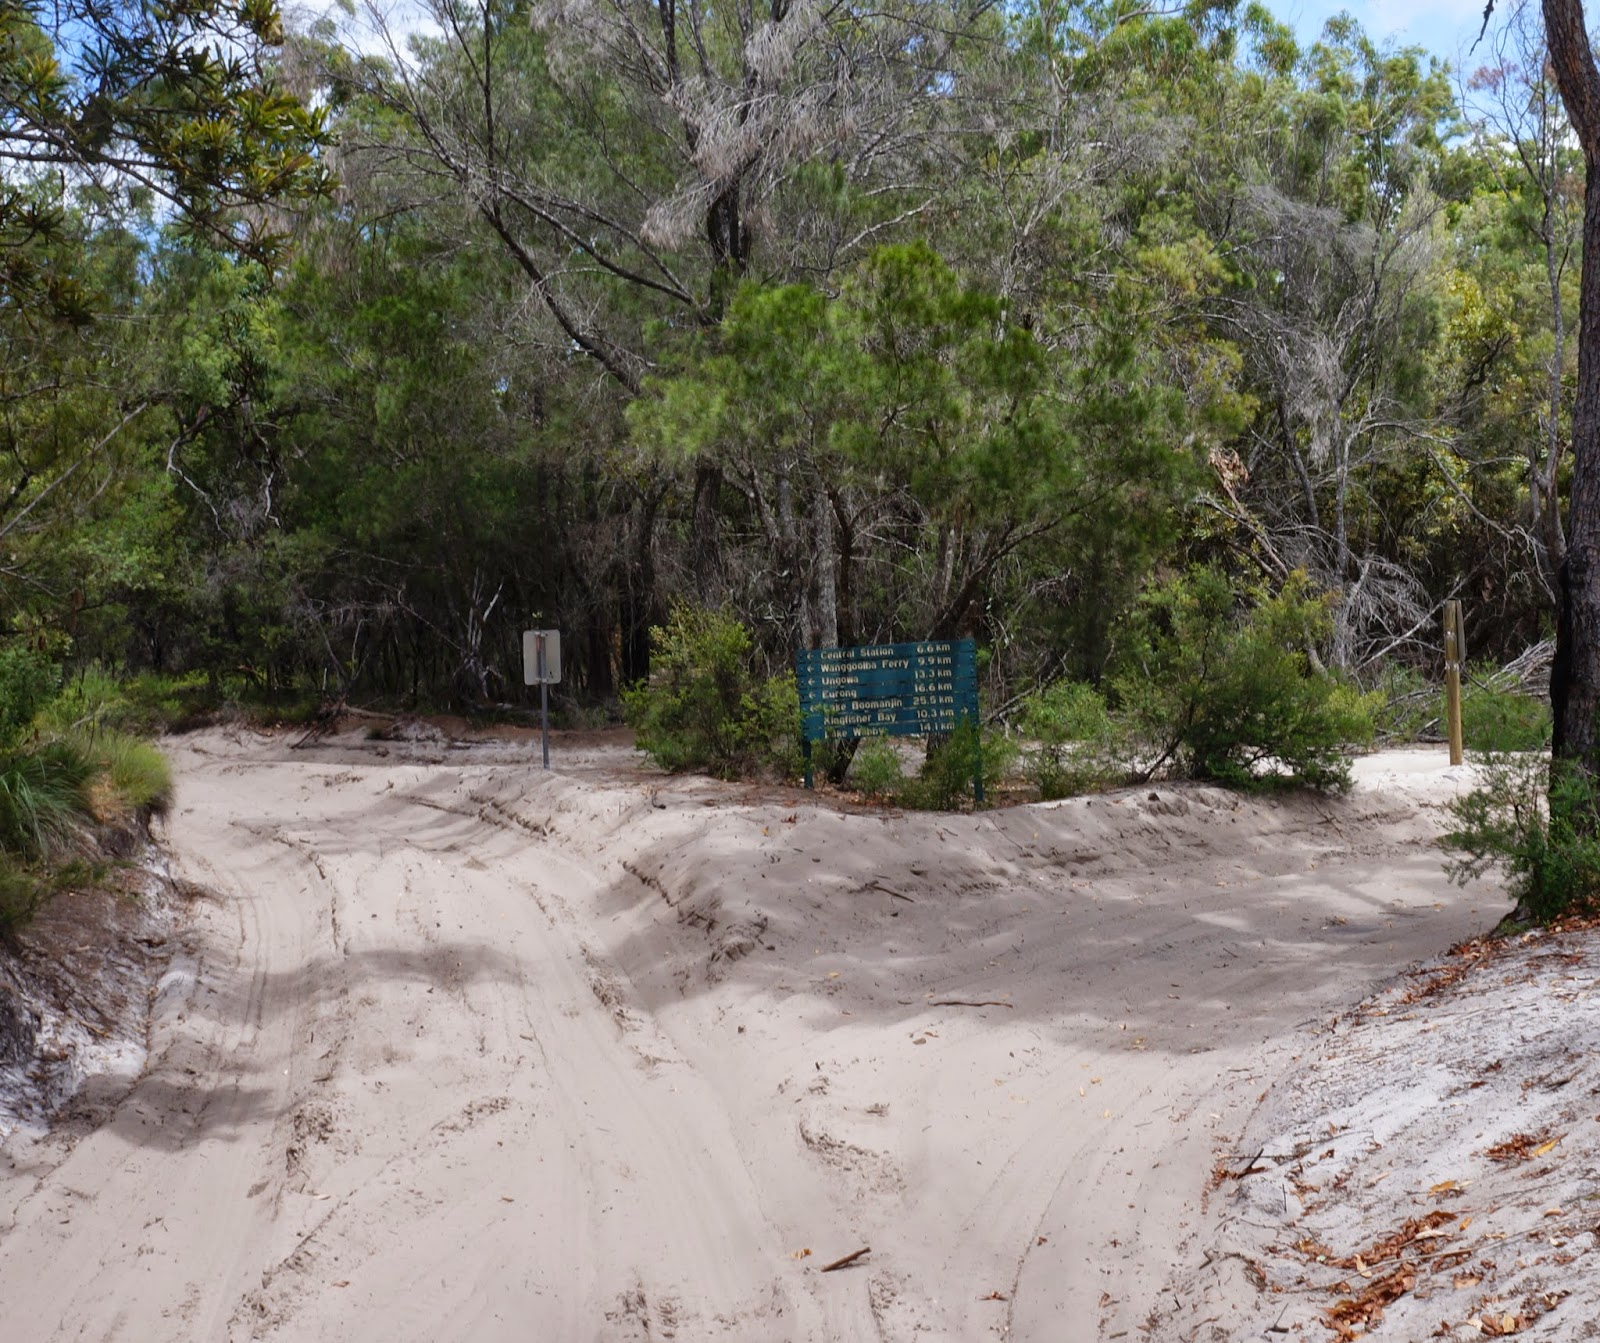 Fraser Island Australia: Mobility Management Australia: Moving Around Fraser Island